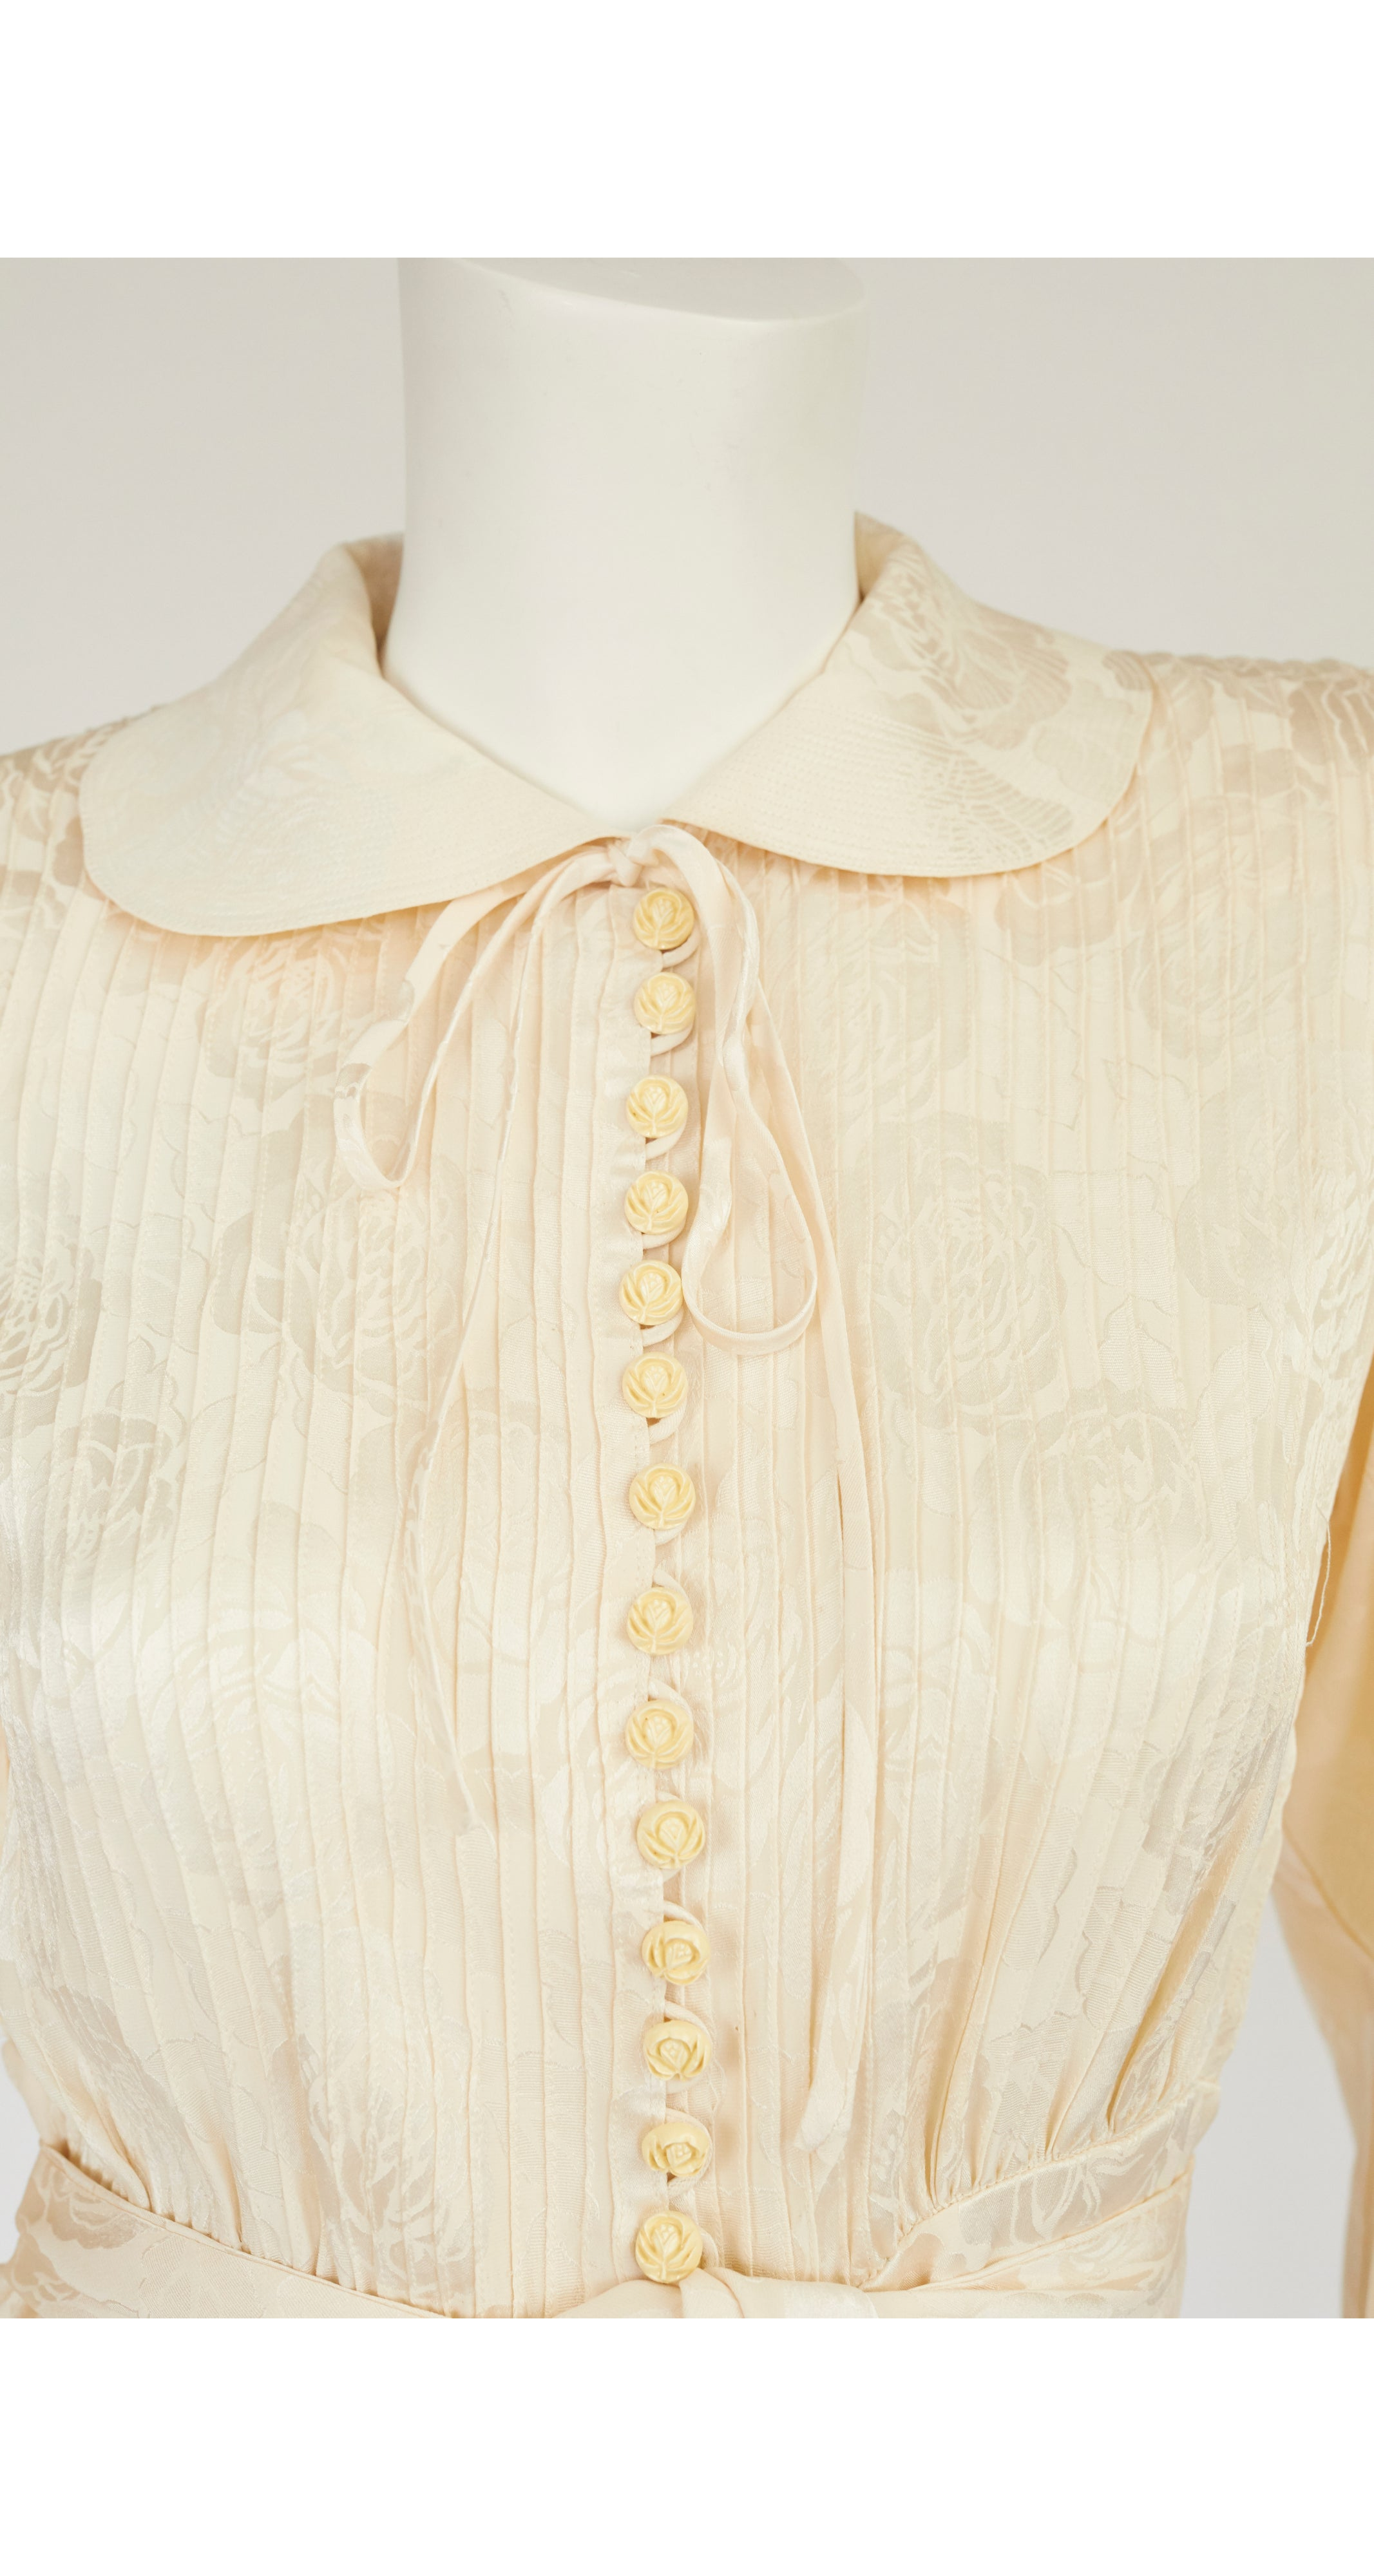 1970s Rose Print Cream Silk Jacquard Blouse & Vest Set